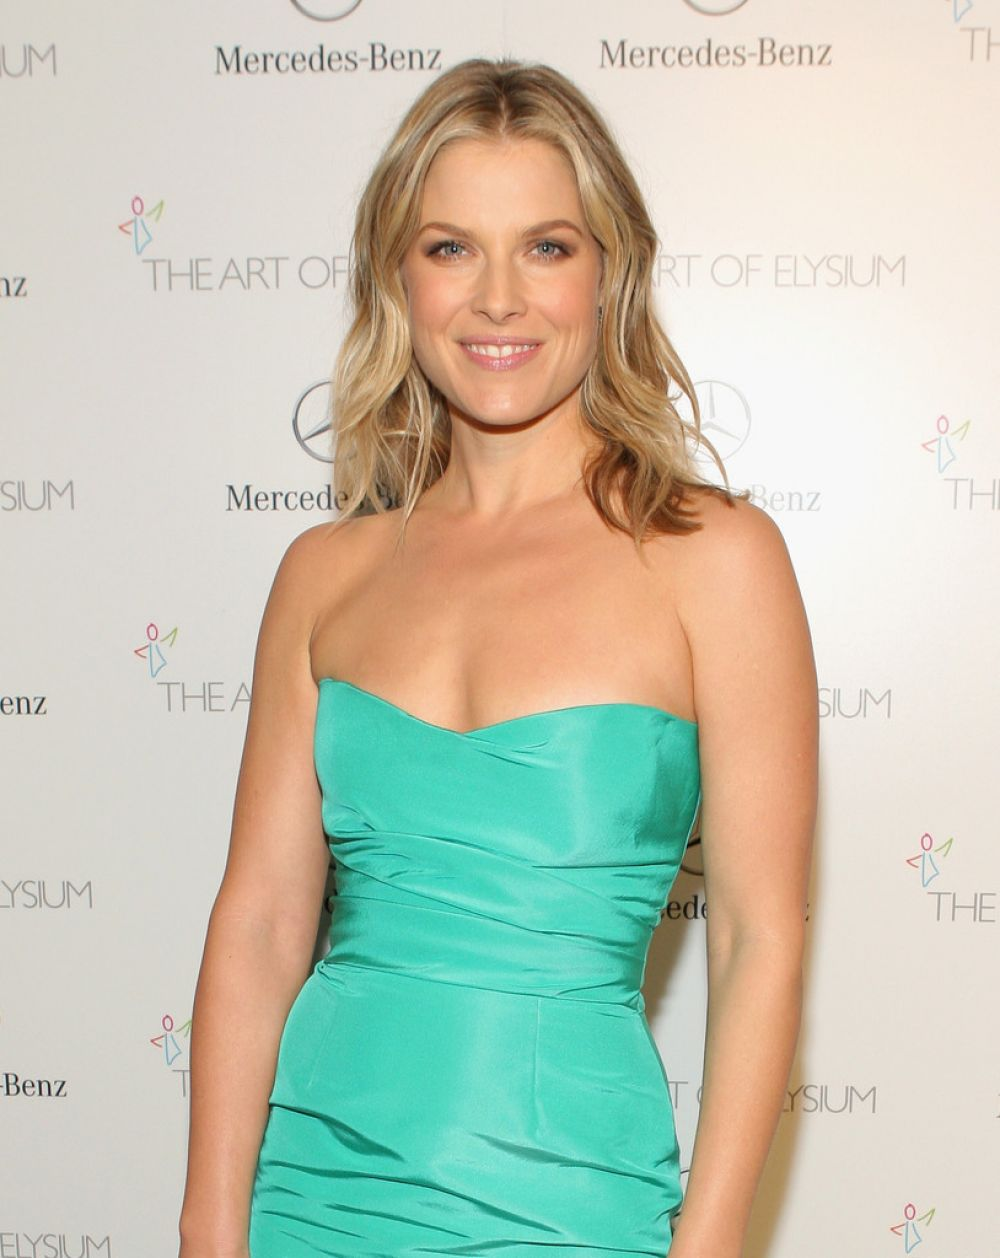 ALI LARTER at The Art of Elysium's 7th Annual Heaven Gala in Los Angeles